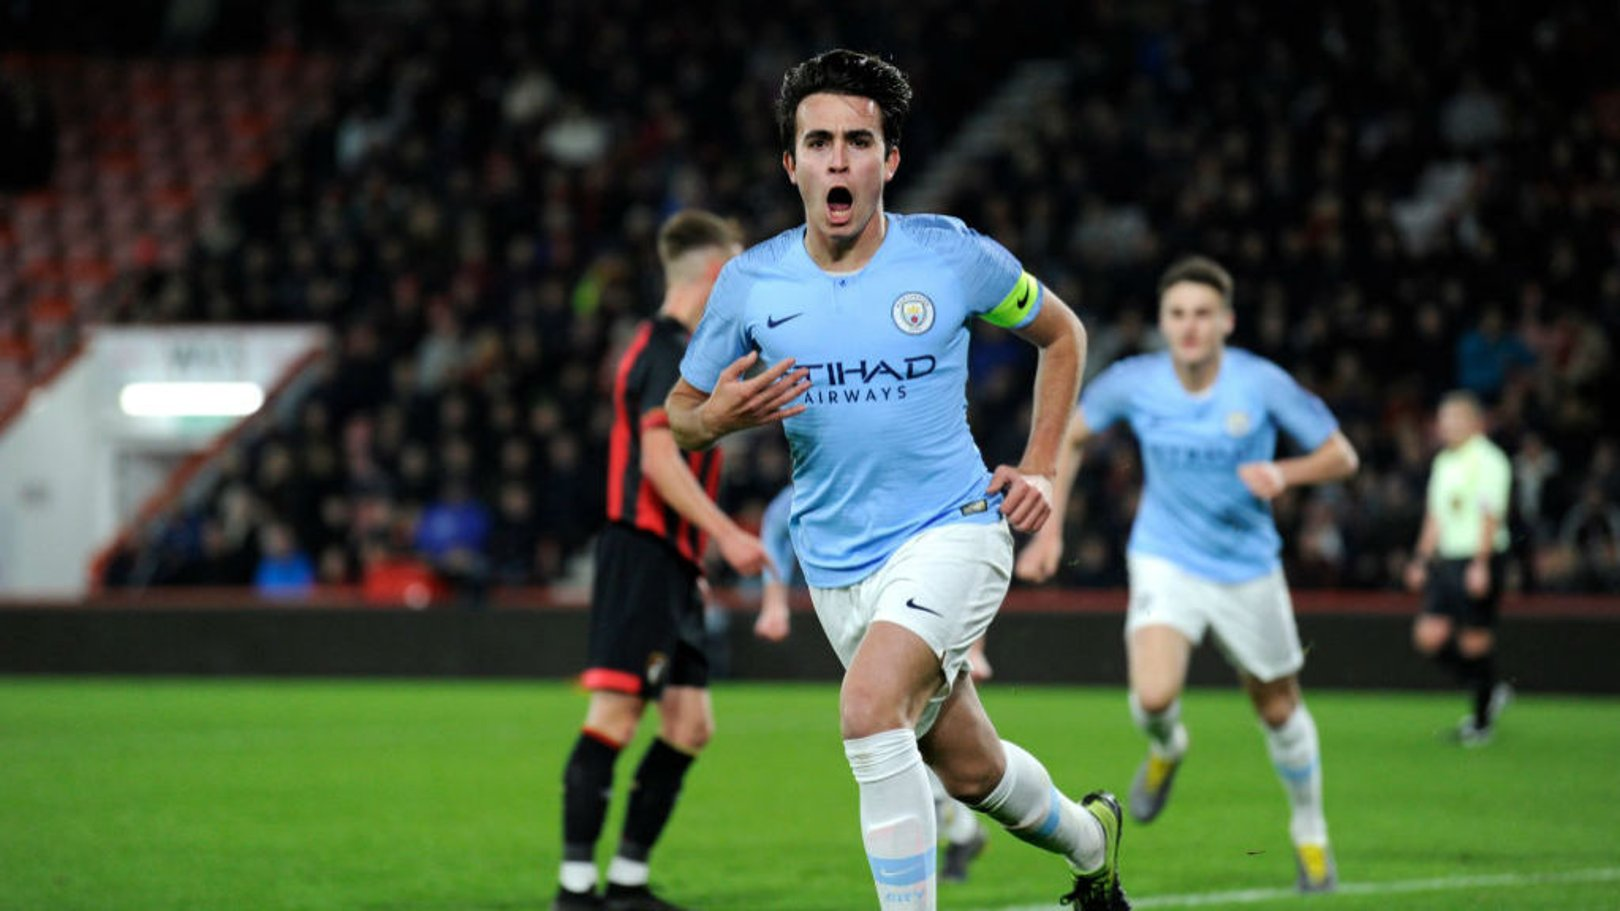 INSPIRATION: Eric Garcia celebrates after scoring with a superb header in our FA Youth Cup quarter-final win at Bournemouth